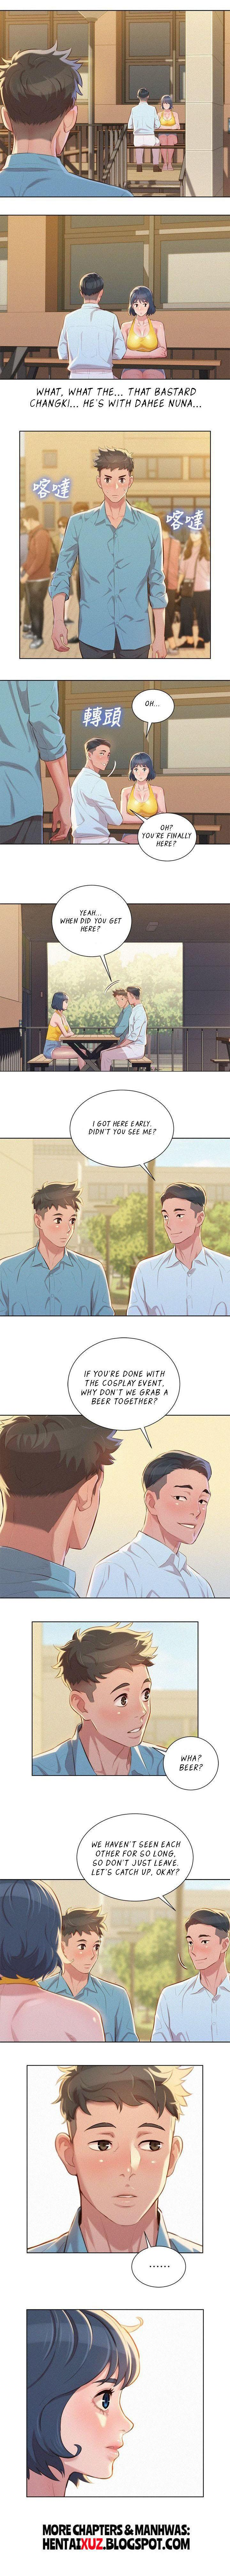 What do you Take me For? Ch.70/? 403